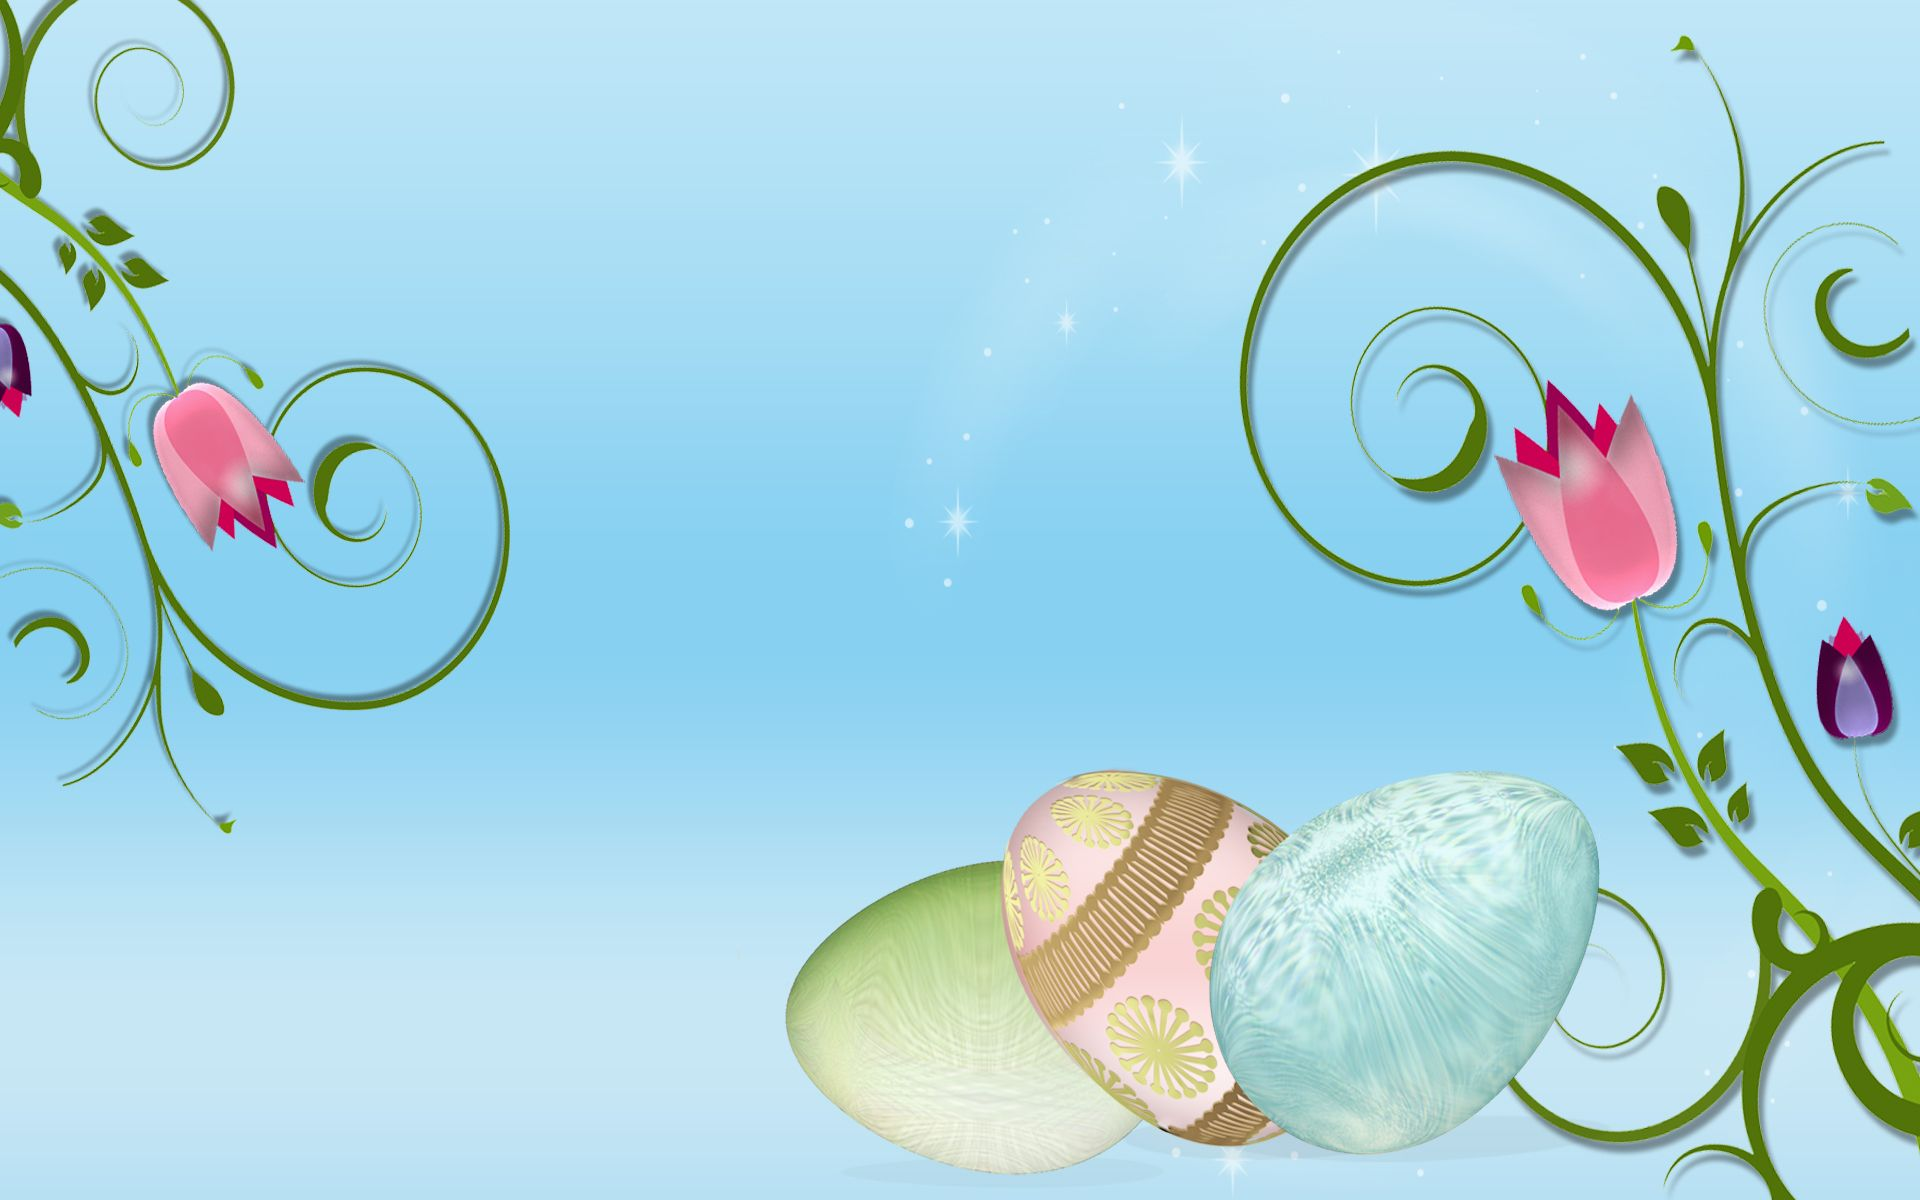 Easter Screensavers Download Free Easter Screensavers In 2880x1800 2560x1600 1920x1200 And In A Screen Savers Wallpapers Easter Wallpaper Happy Wallpaper